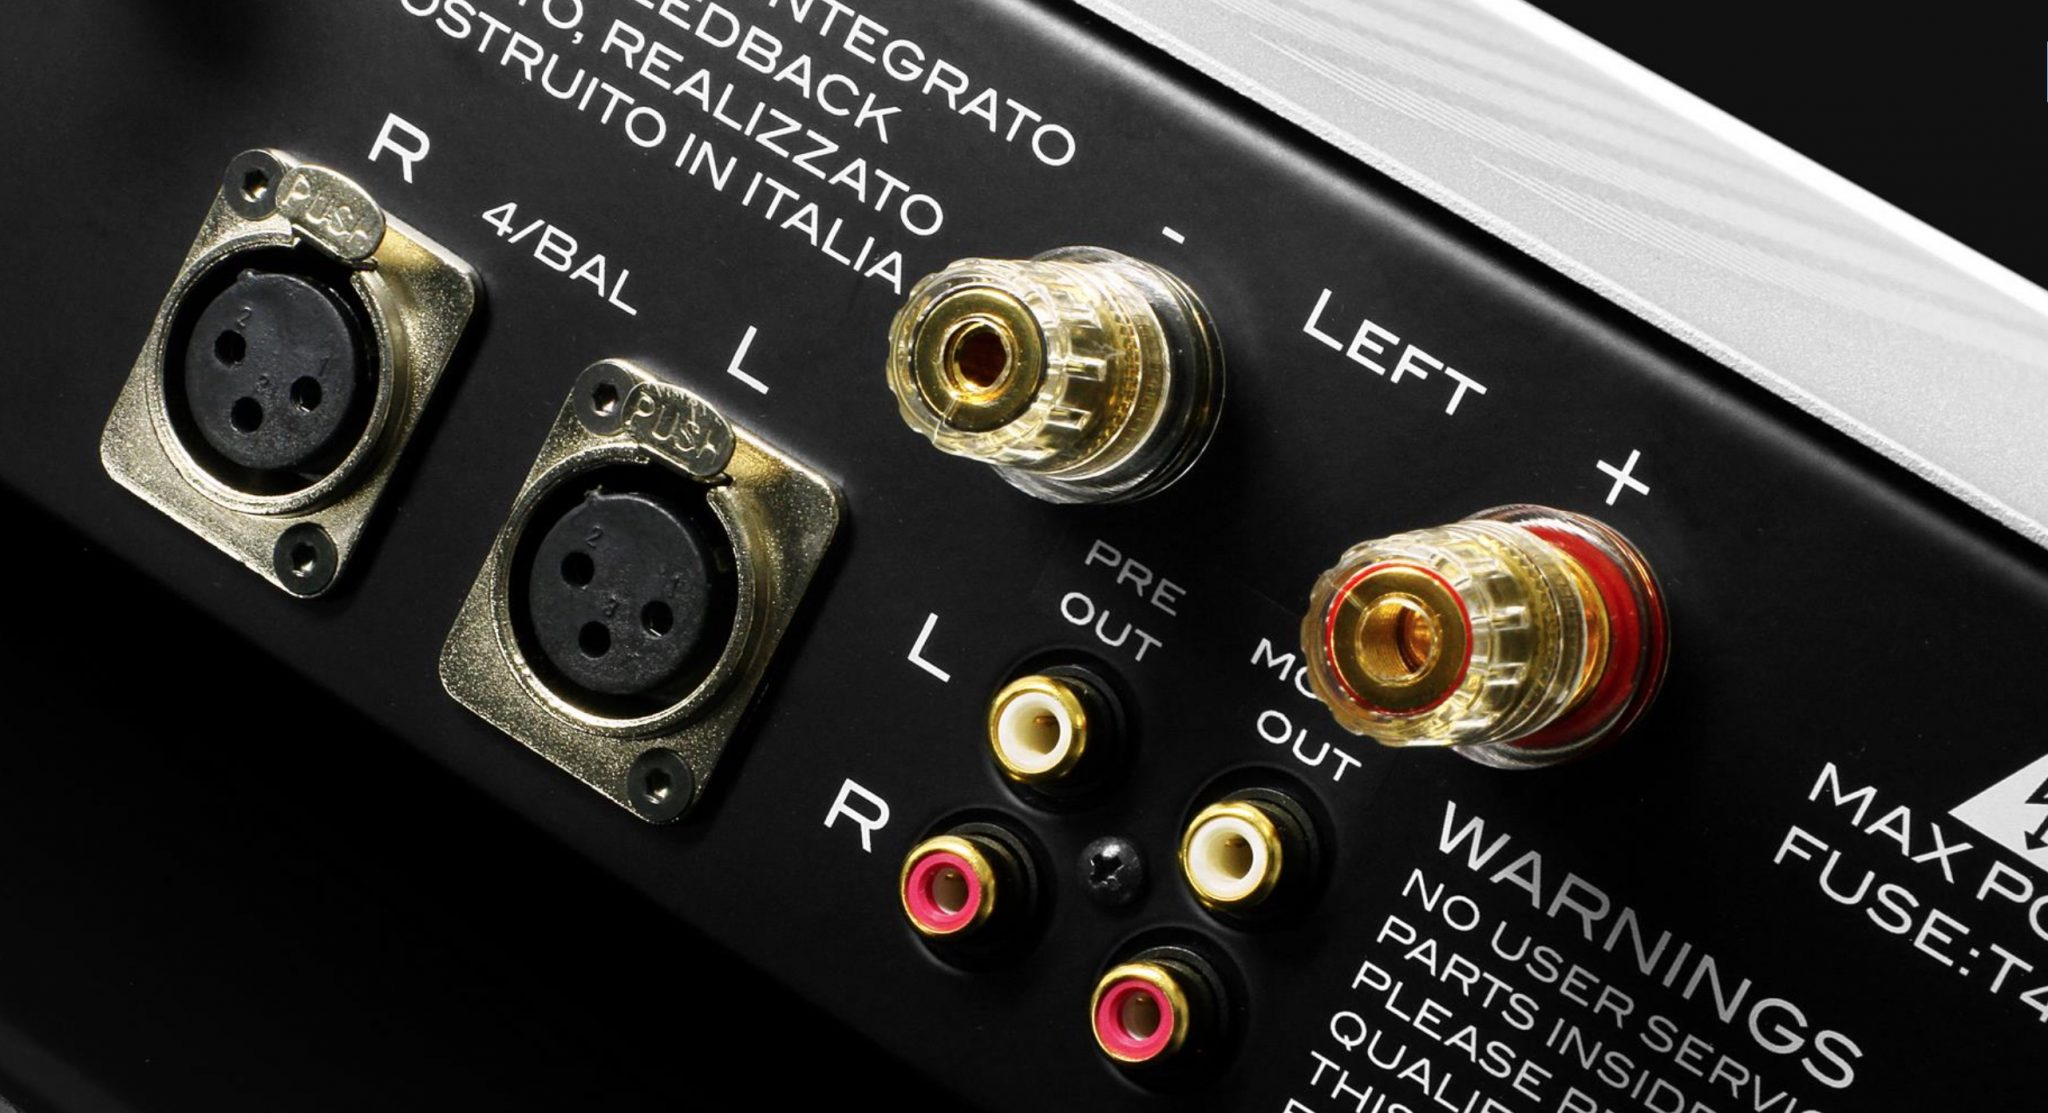 Audio Analogue AAcento PureAA integrated amp